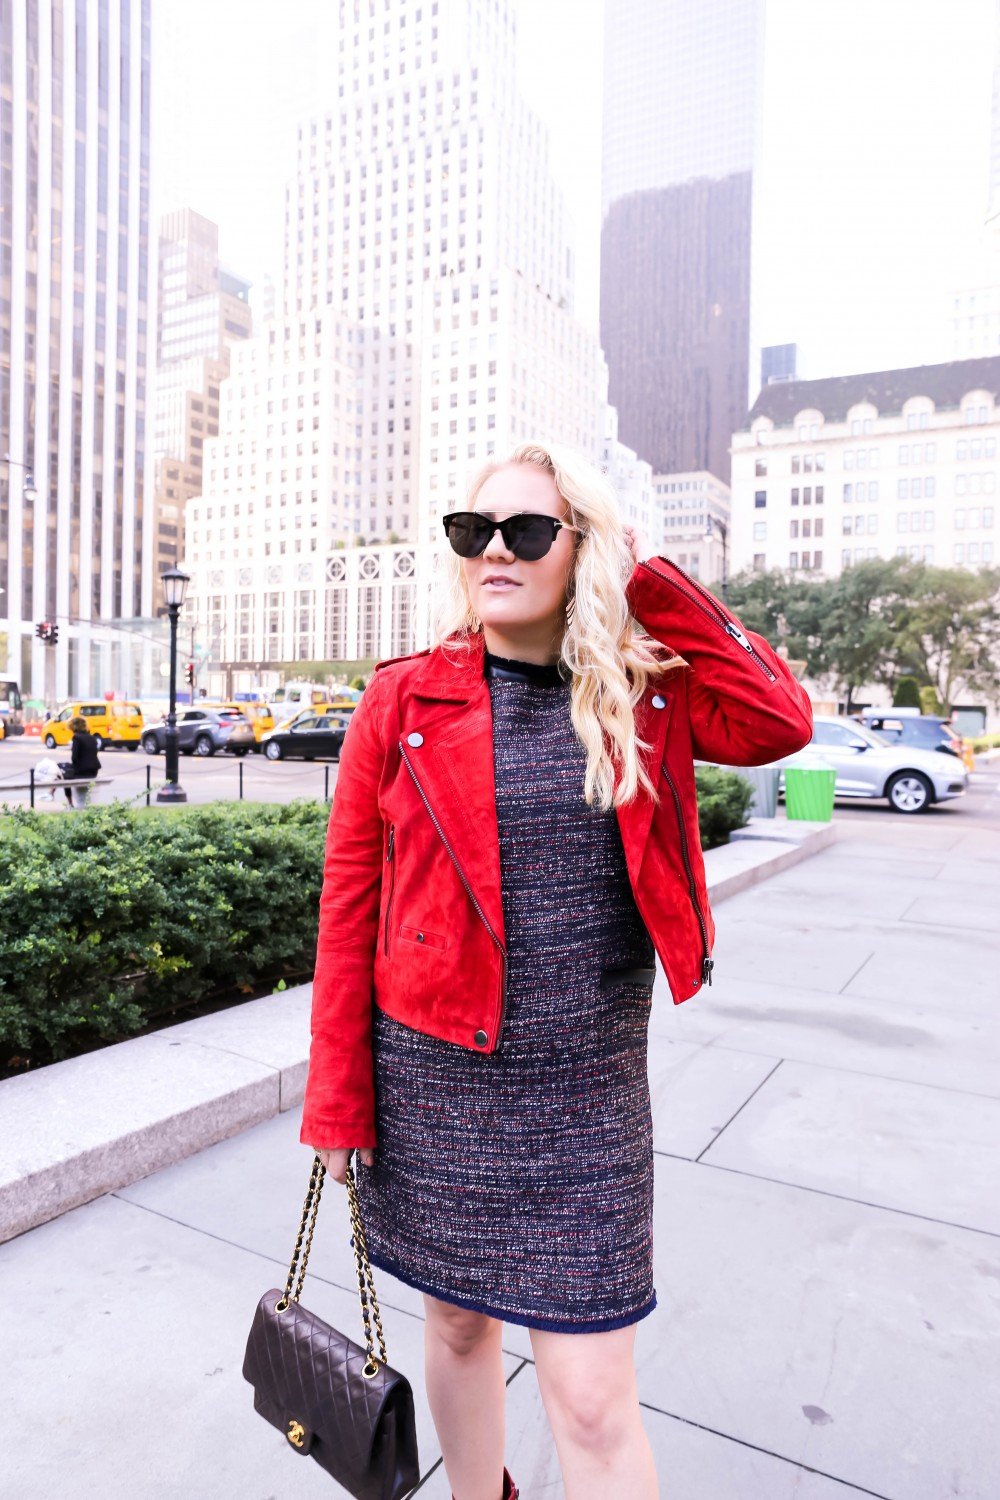 Zoe by Rachel Zoe Collection for Macy's, Fall Style, Outfit Inspiration, Have Need Want